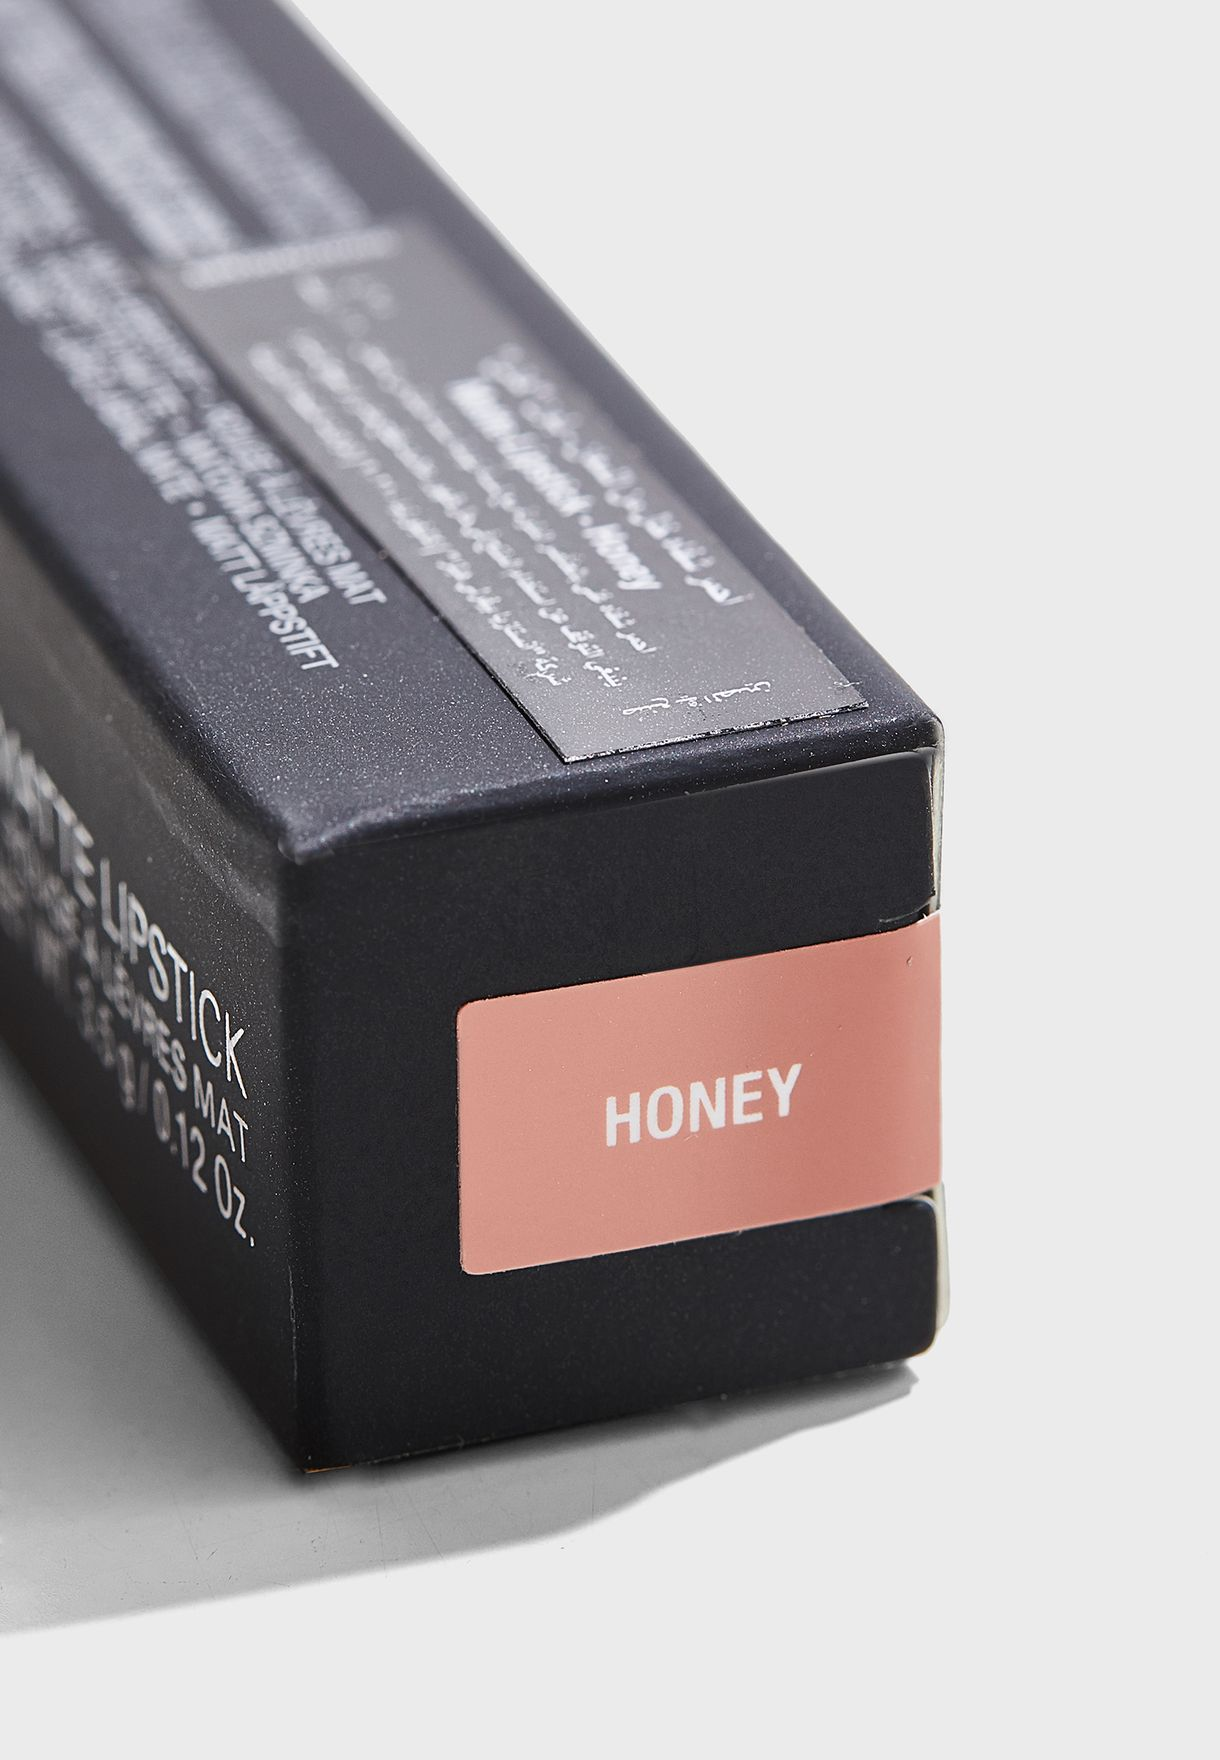 Matte Lipsticks - Honey